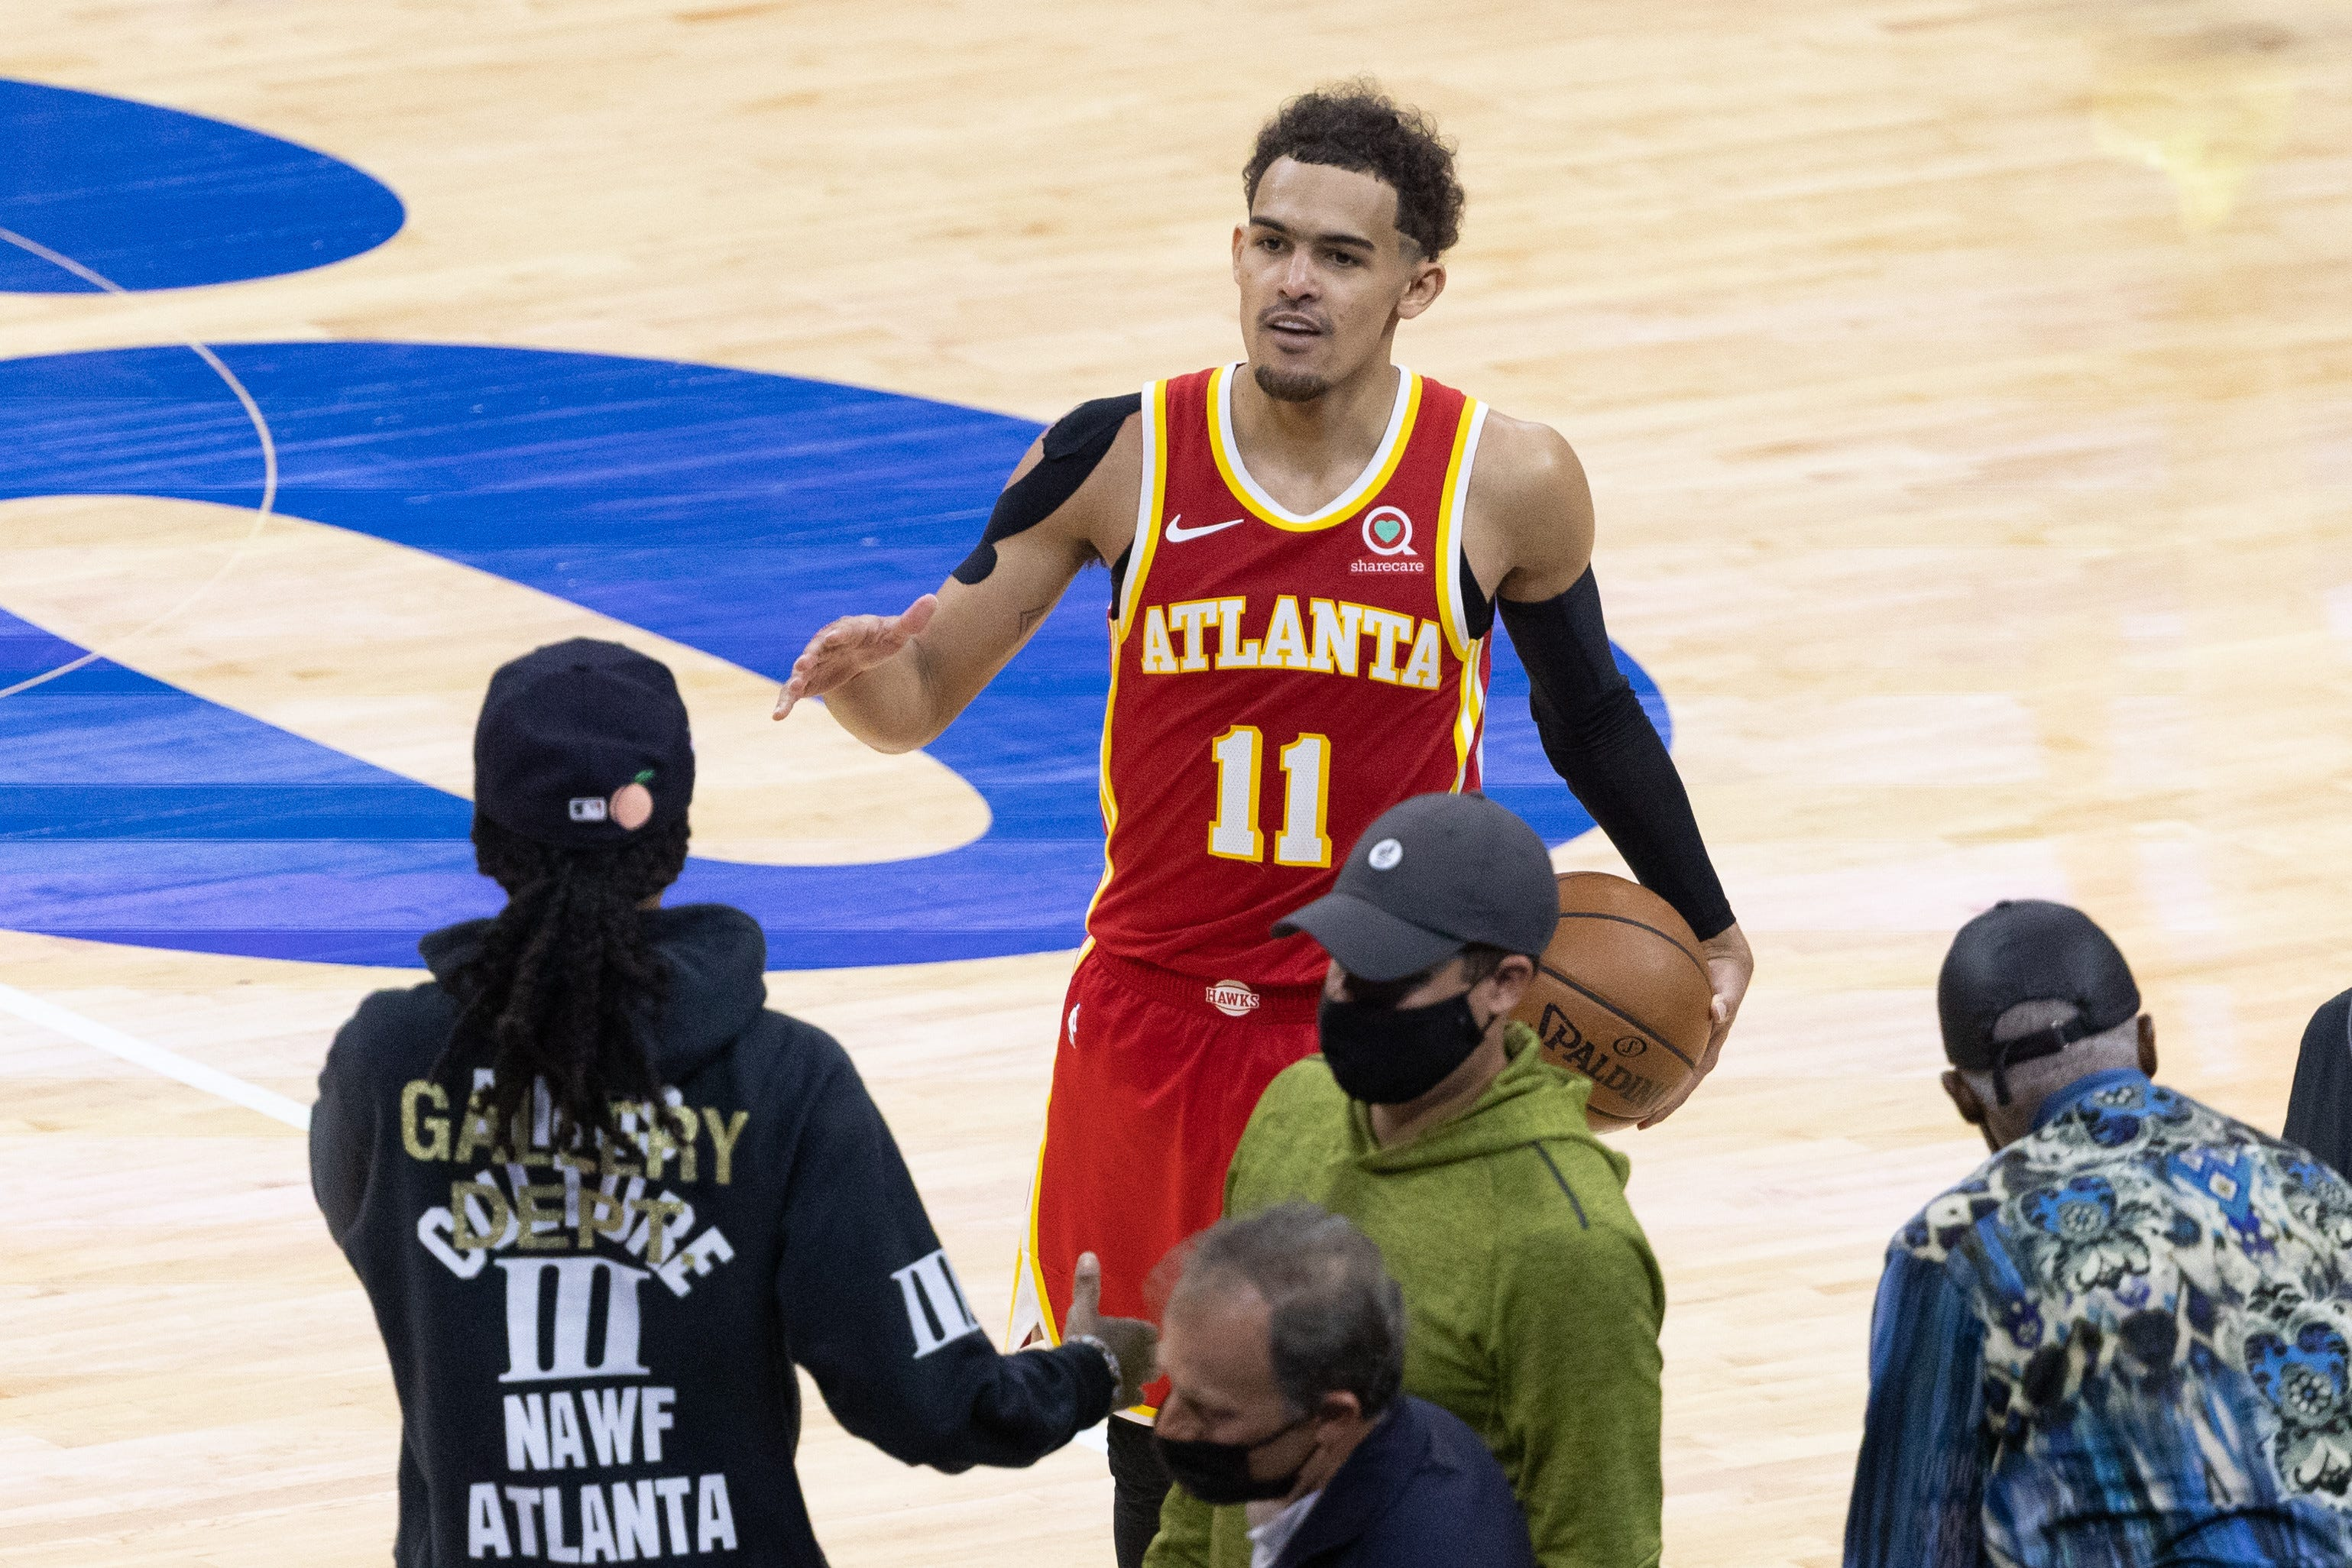 'These guys just don't give up': How Hawks pulled off epic 26-point comeback win vs. 76ers